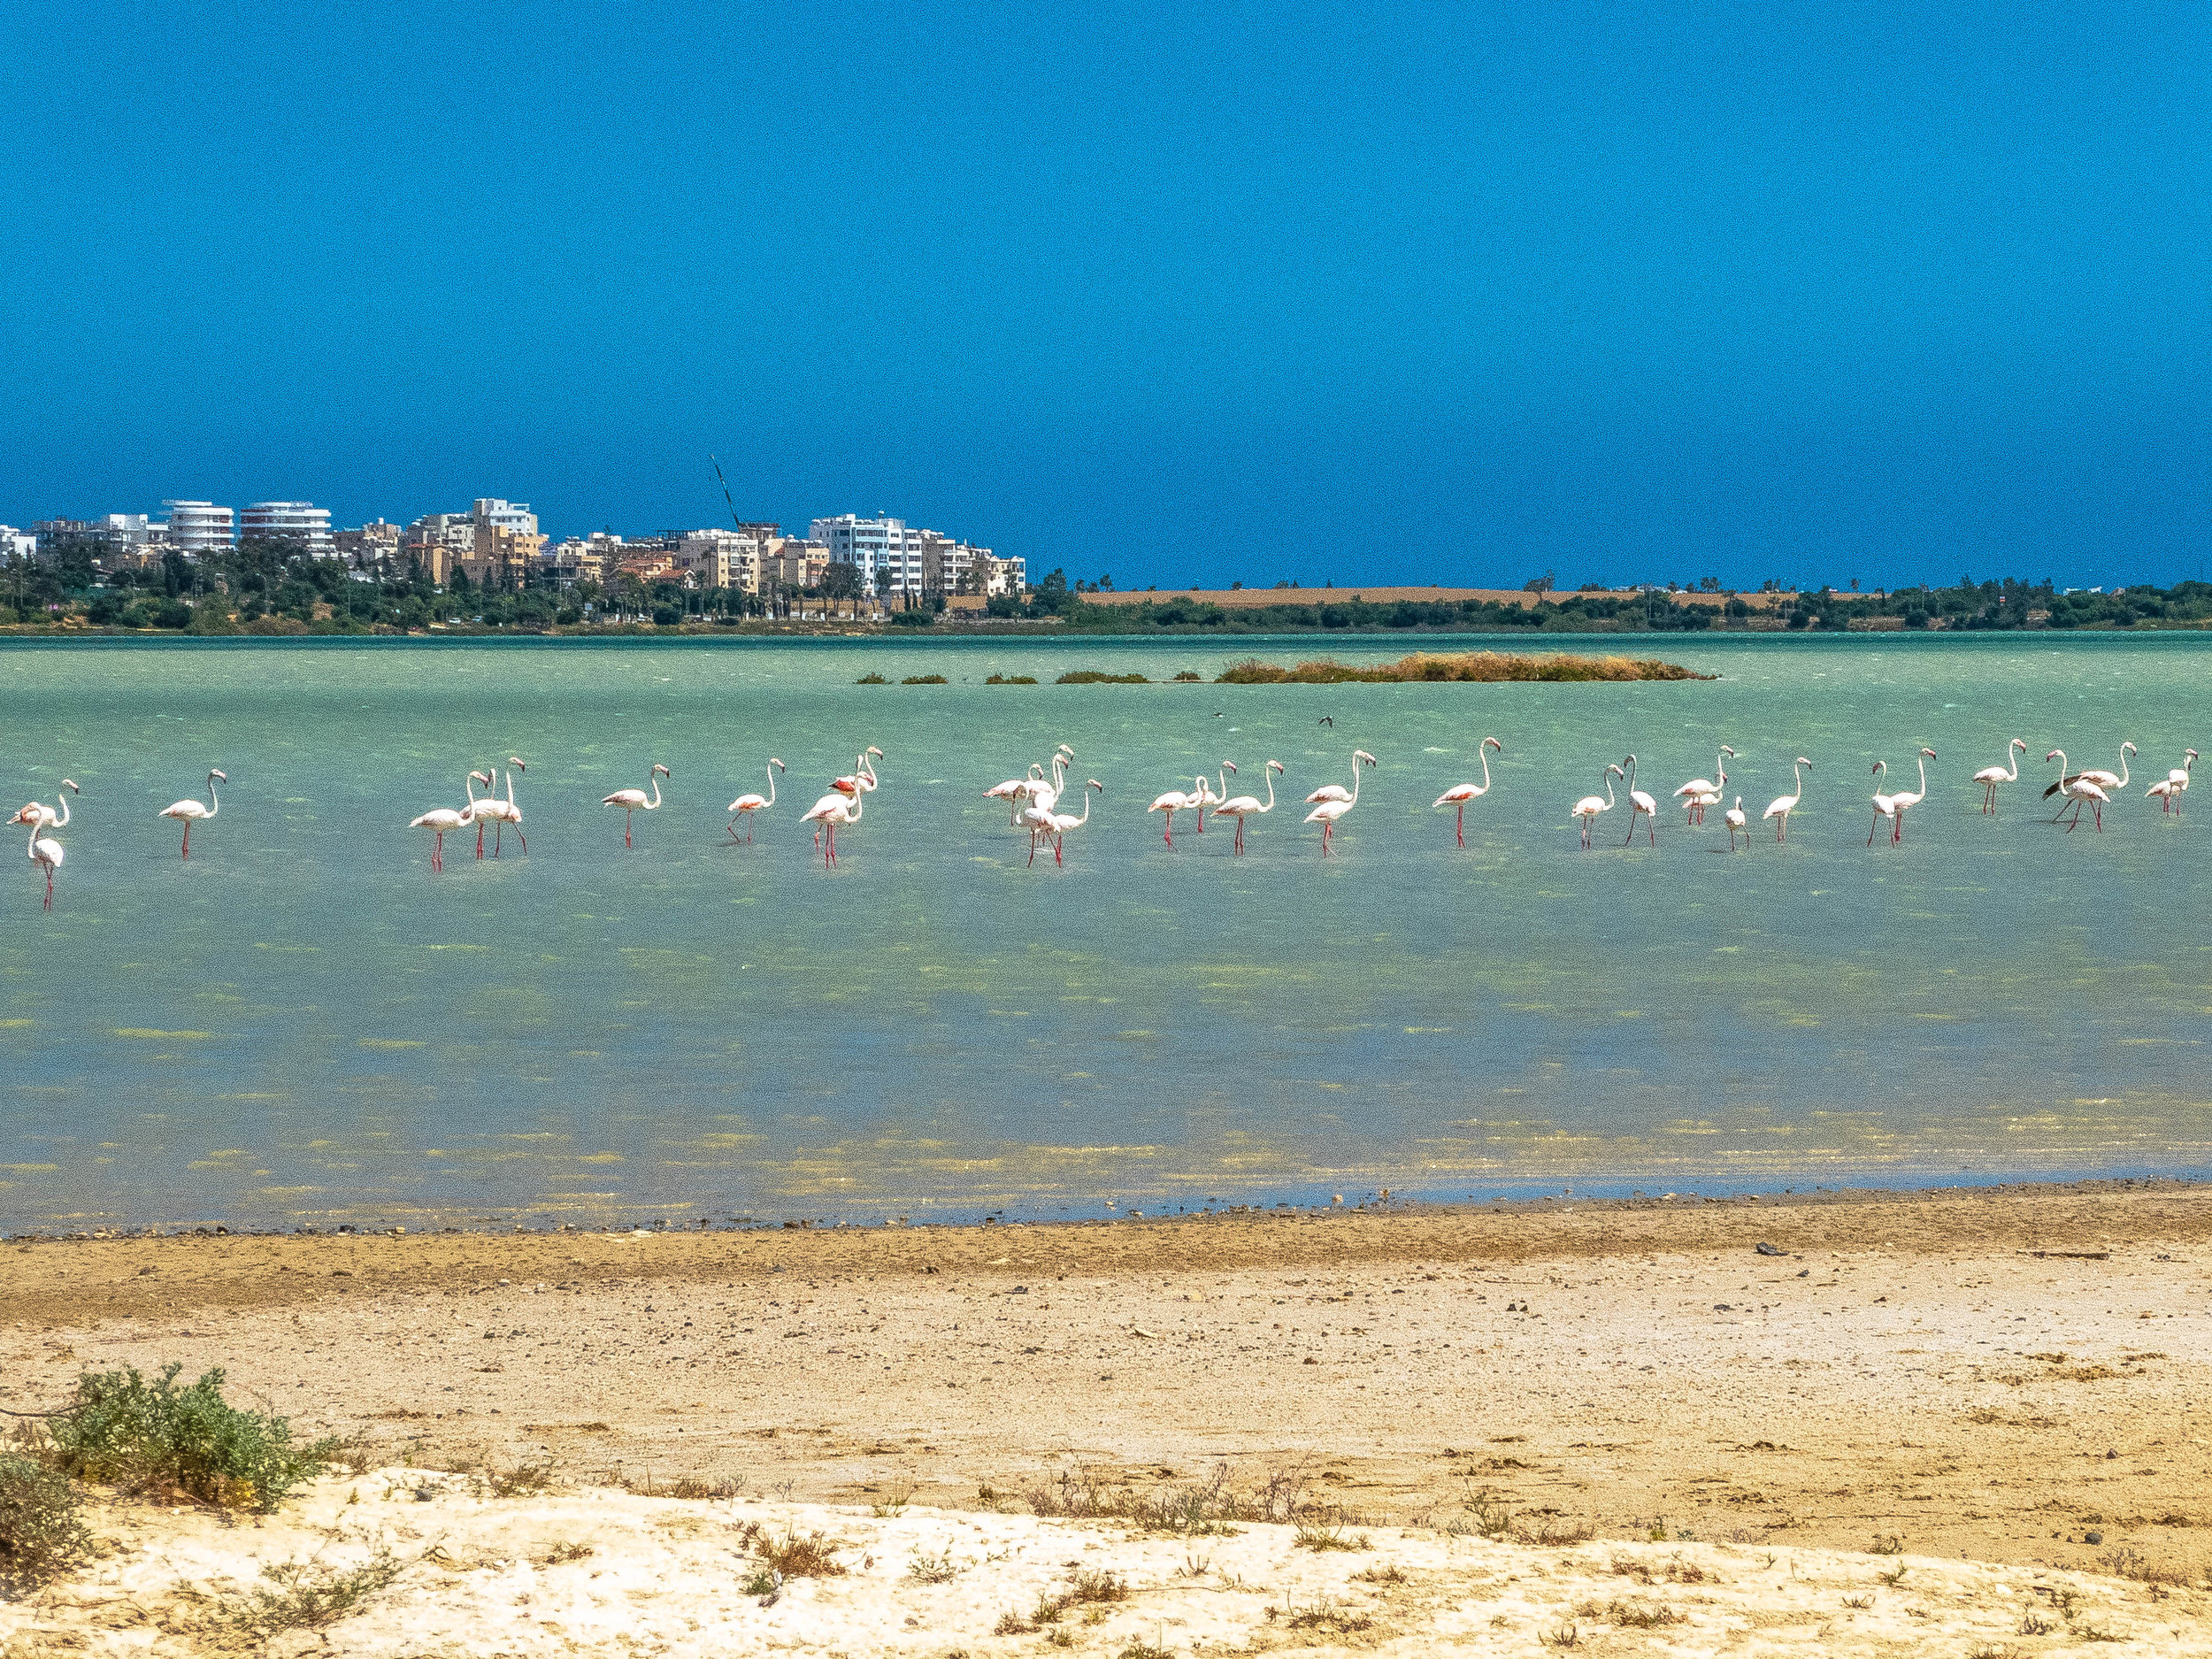 A line of flamingos